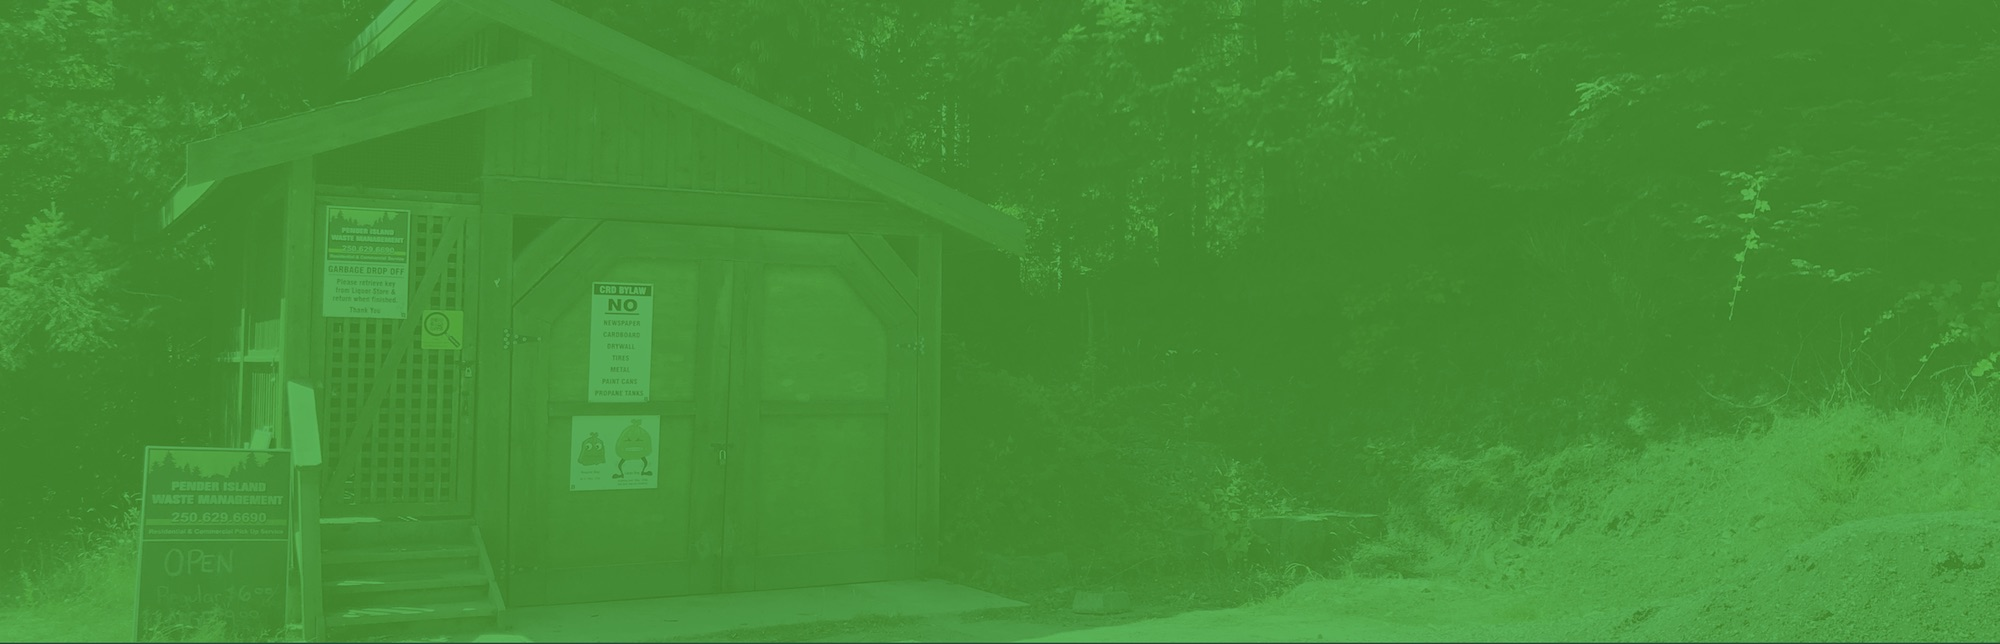 pender island disposal services collection station green filter